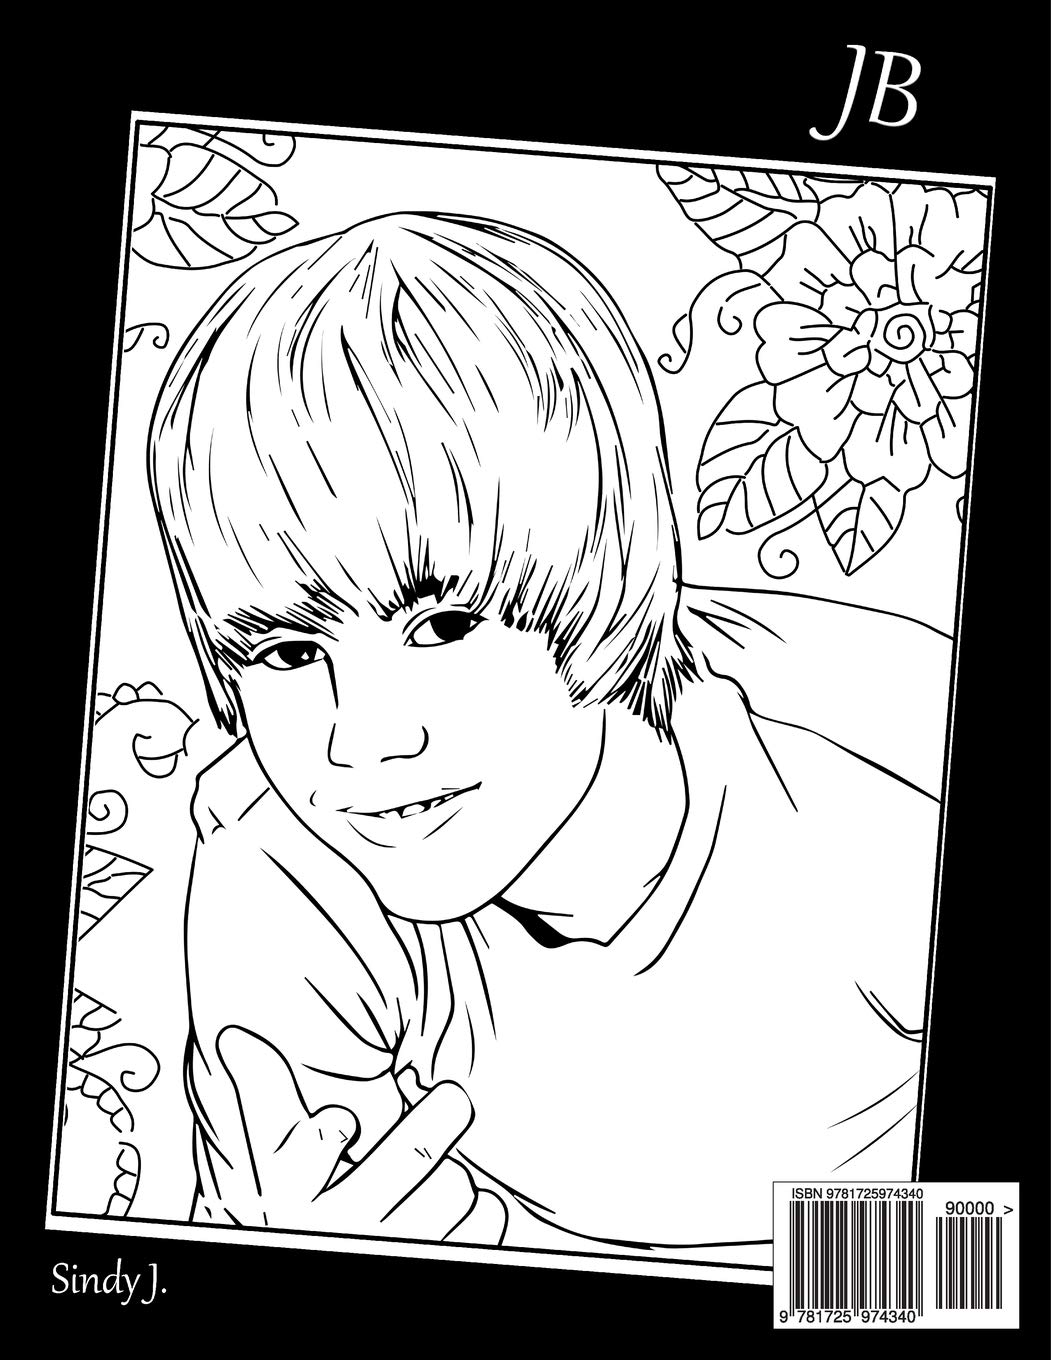 JUSTIN BIEBER coloring pages - Coloring pages - Printable Coloring ... | 1360x1051